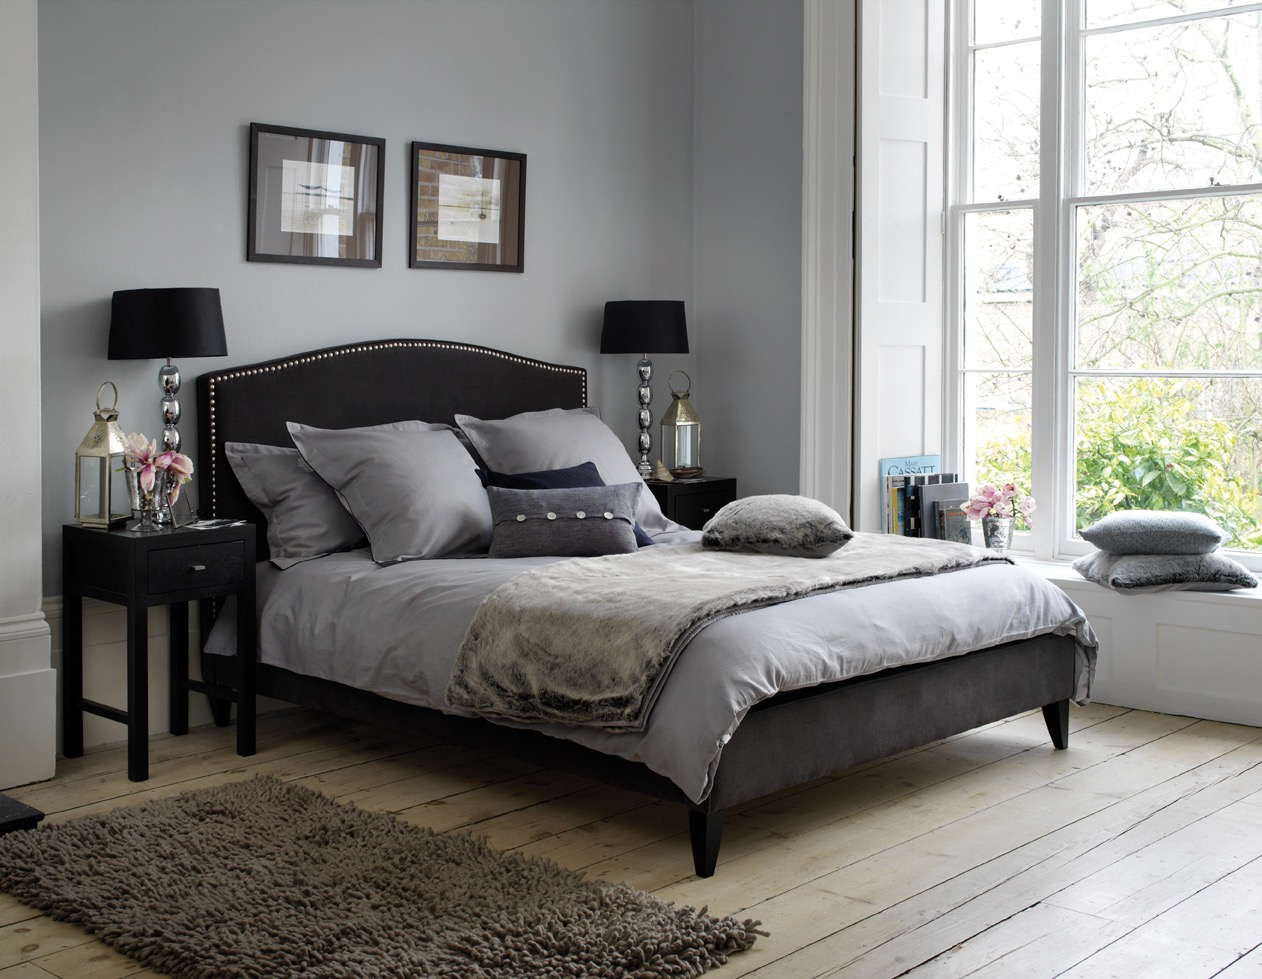 Gothic Bedroom In Grey Color (Image 7 of 11)